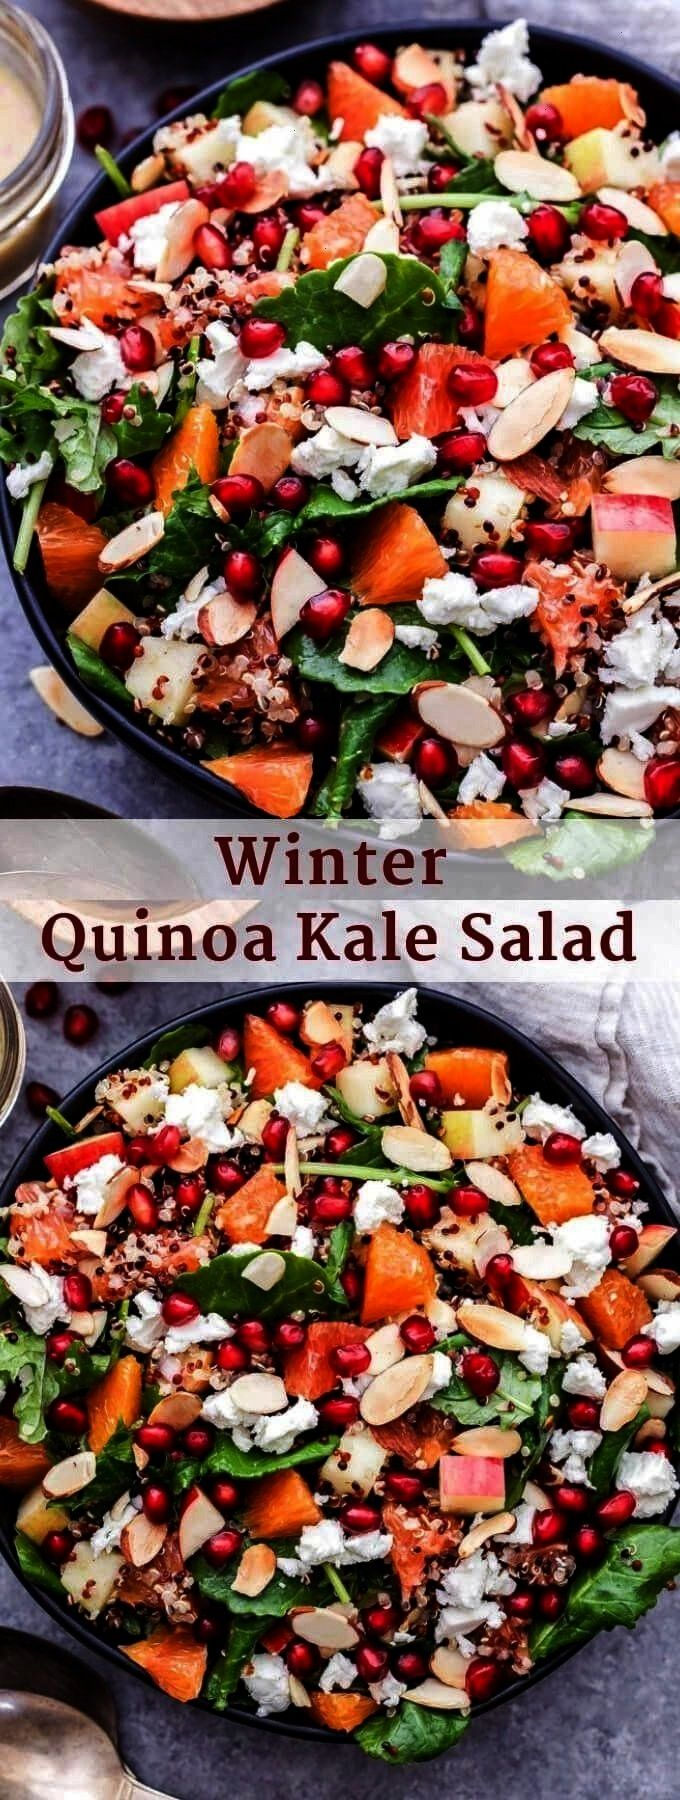 Salad - Recipe Runner This Winter Quinoa Kale Salad is full of winter produce, hearty quinoa and pe